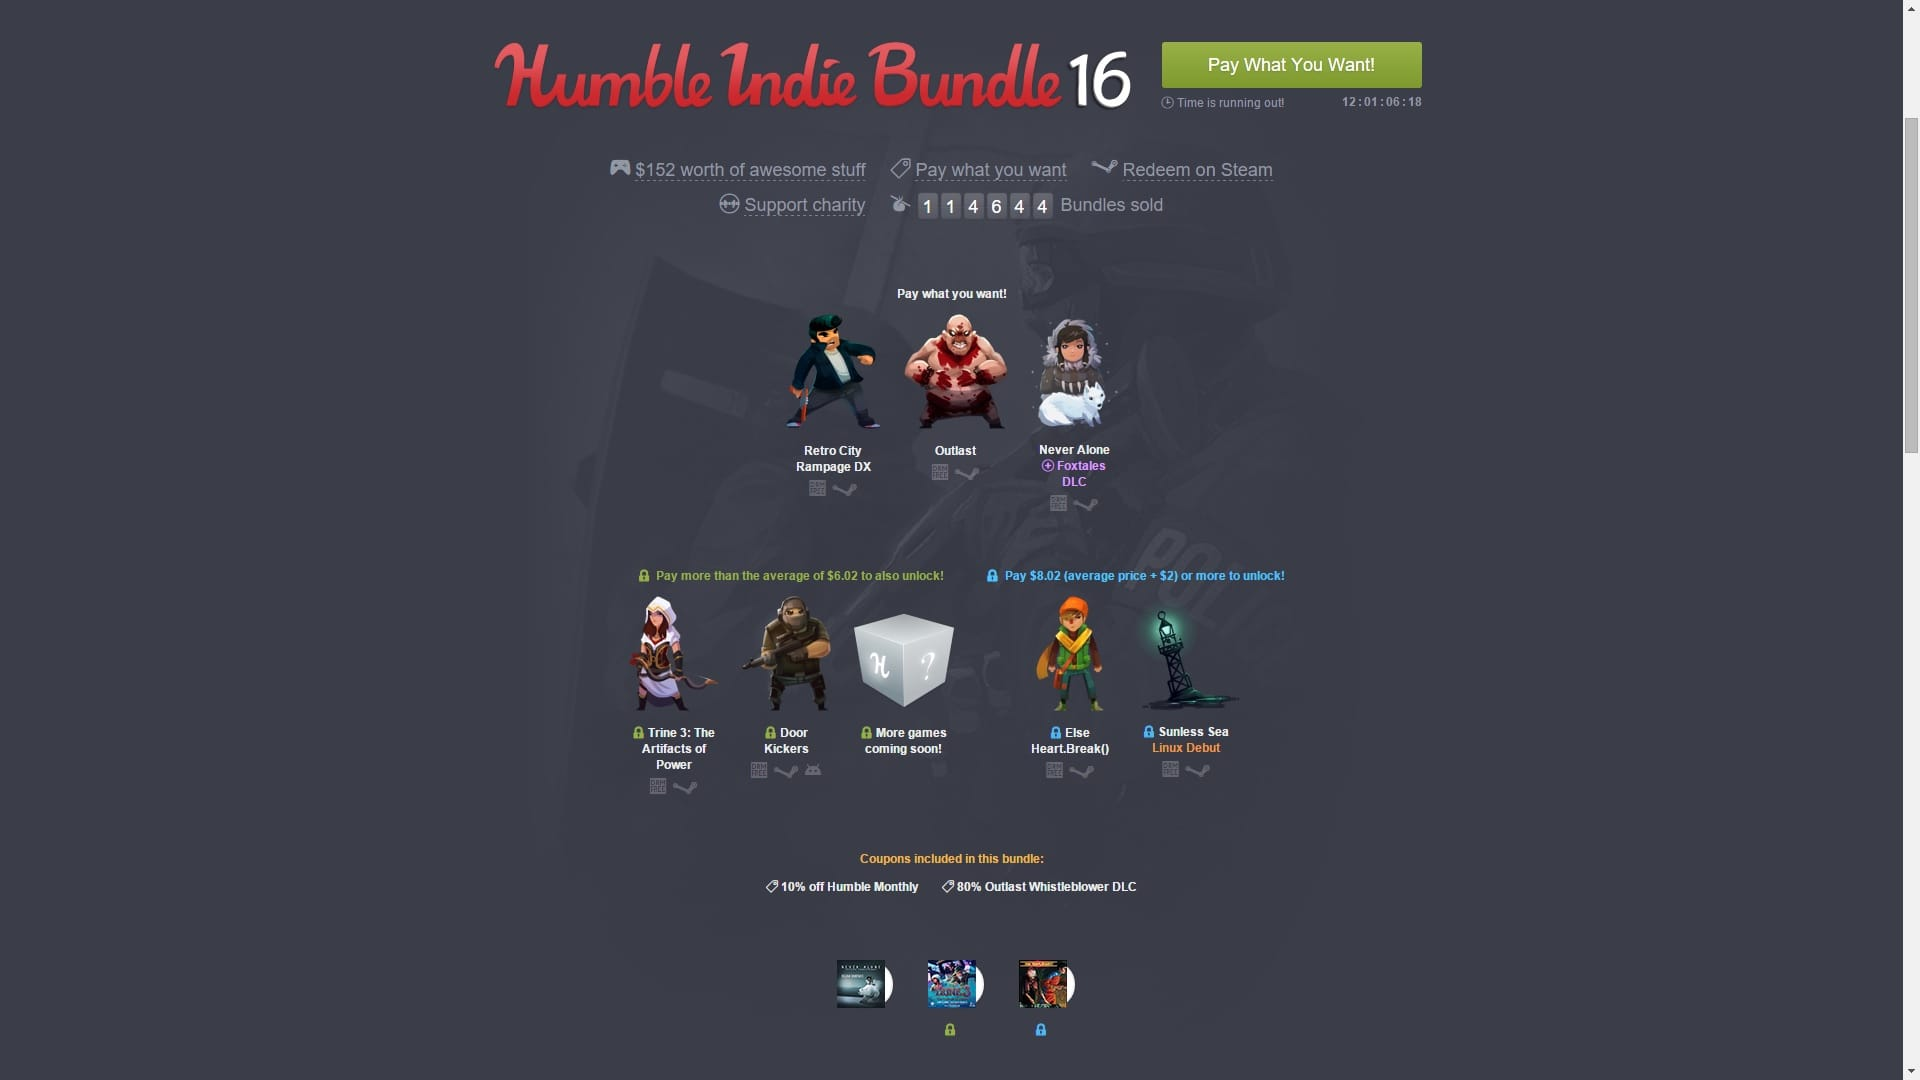 Humble Bundle Indie 16